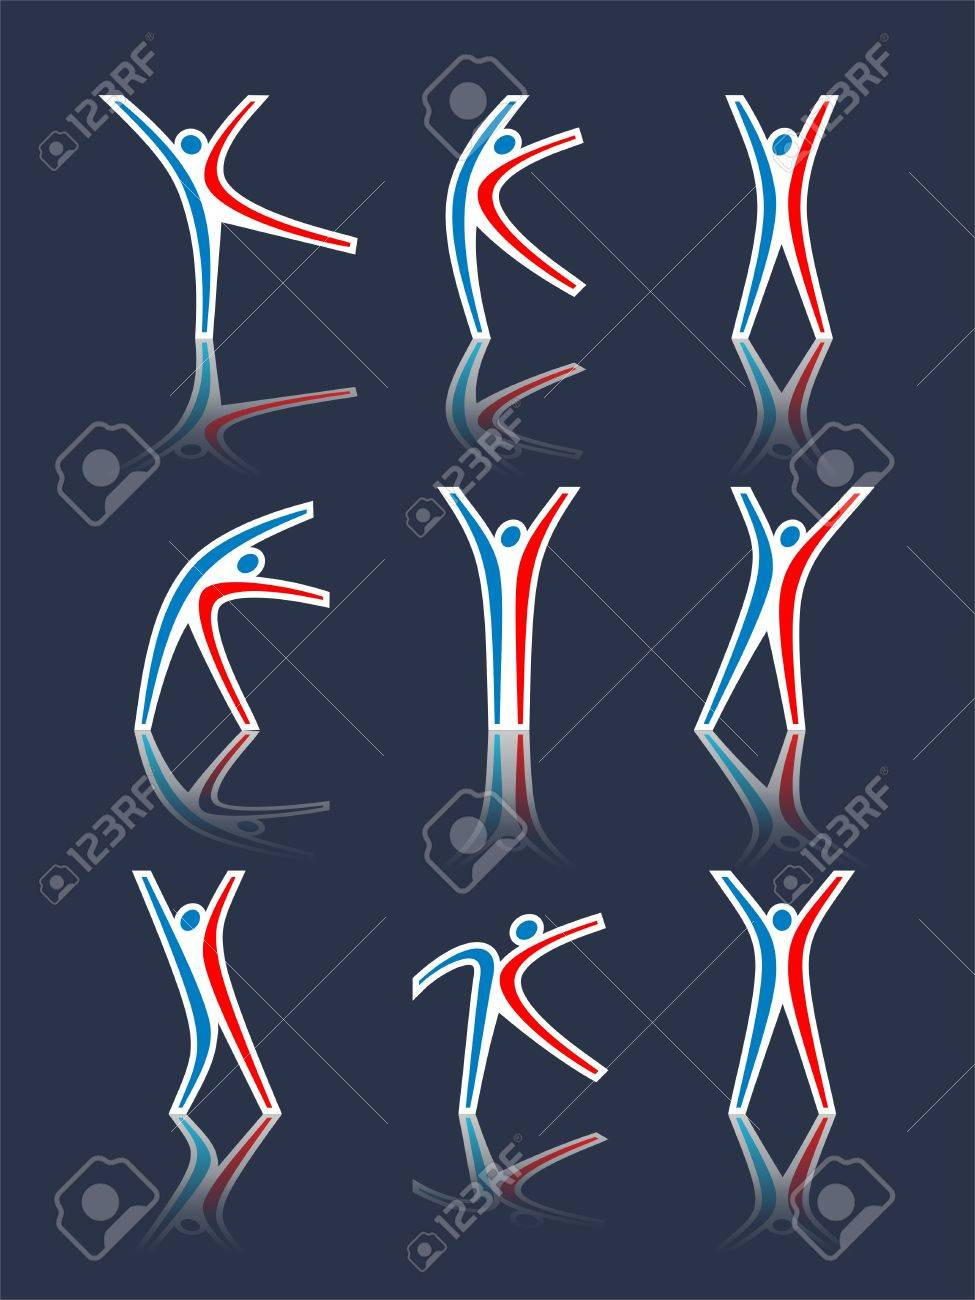 Set of the abstract stylised human figures on a dark background Stock Vector - 9151767